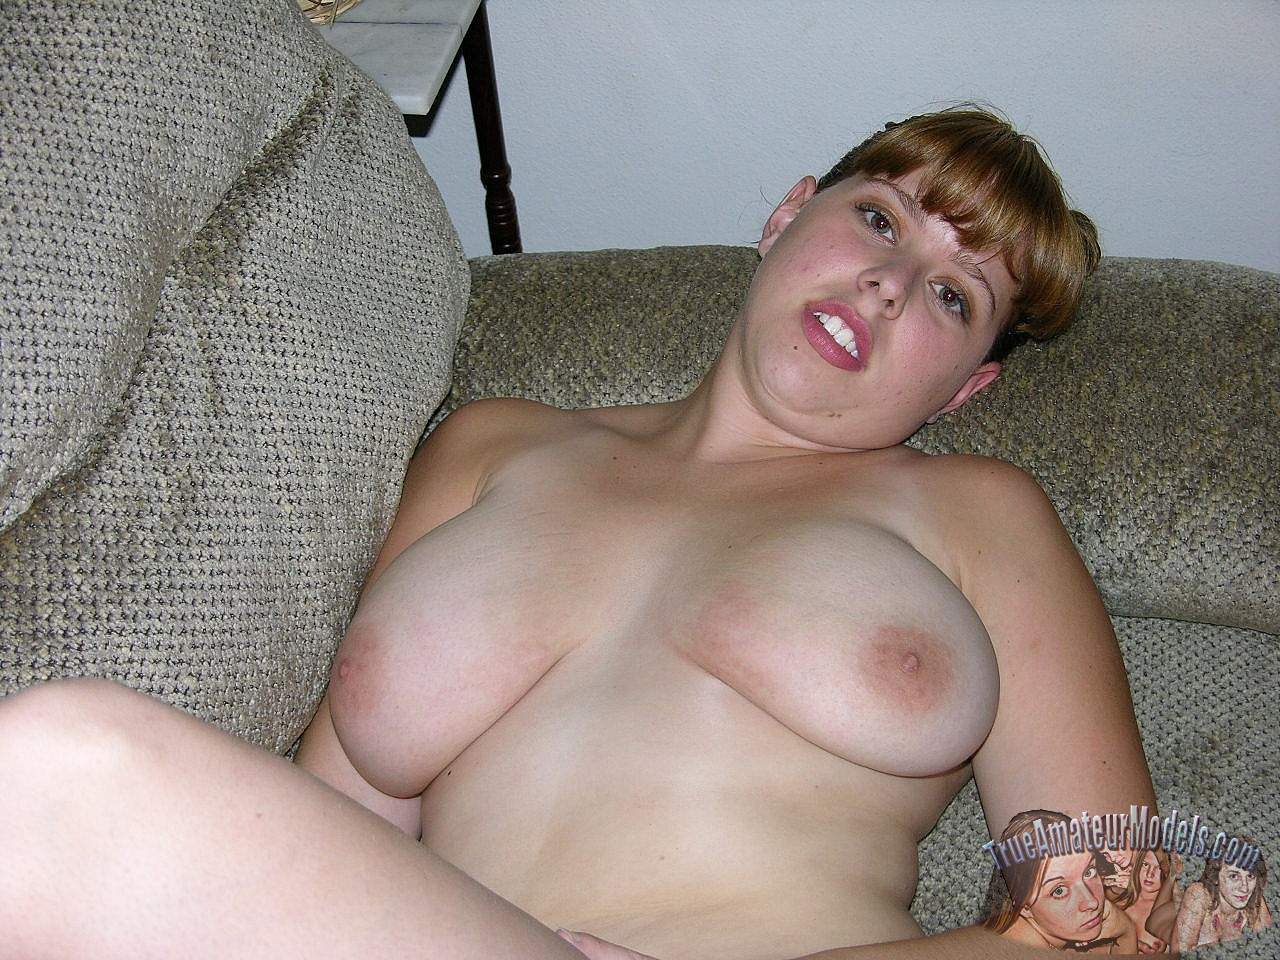 next spreading door amateur Chubby girl